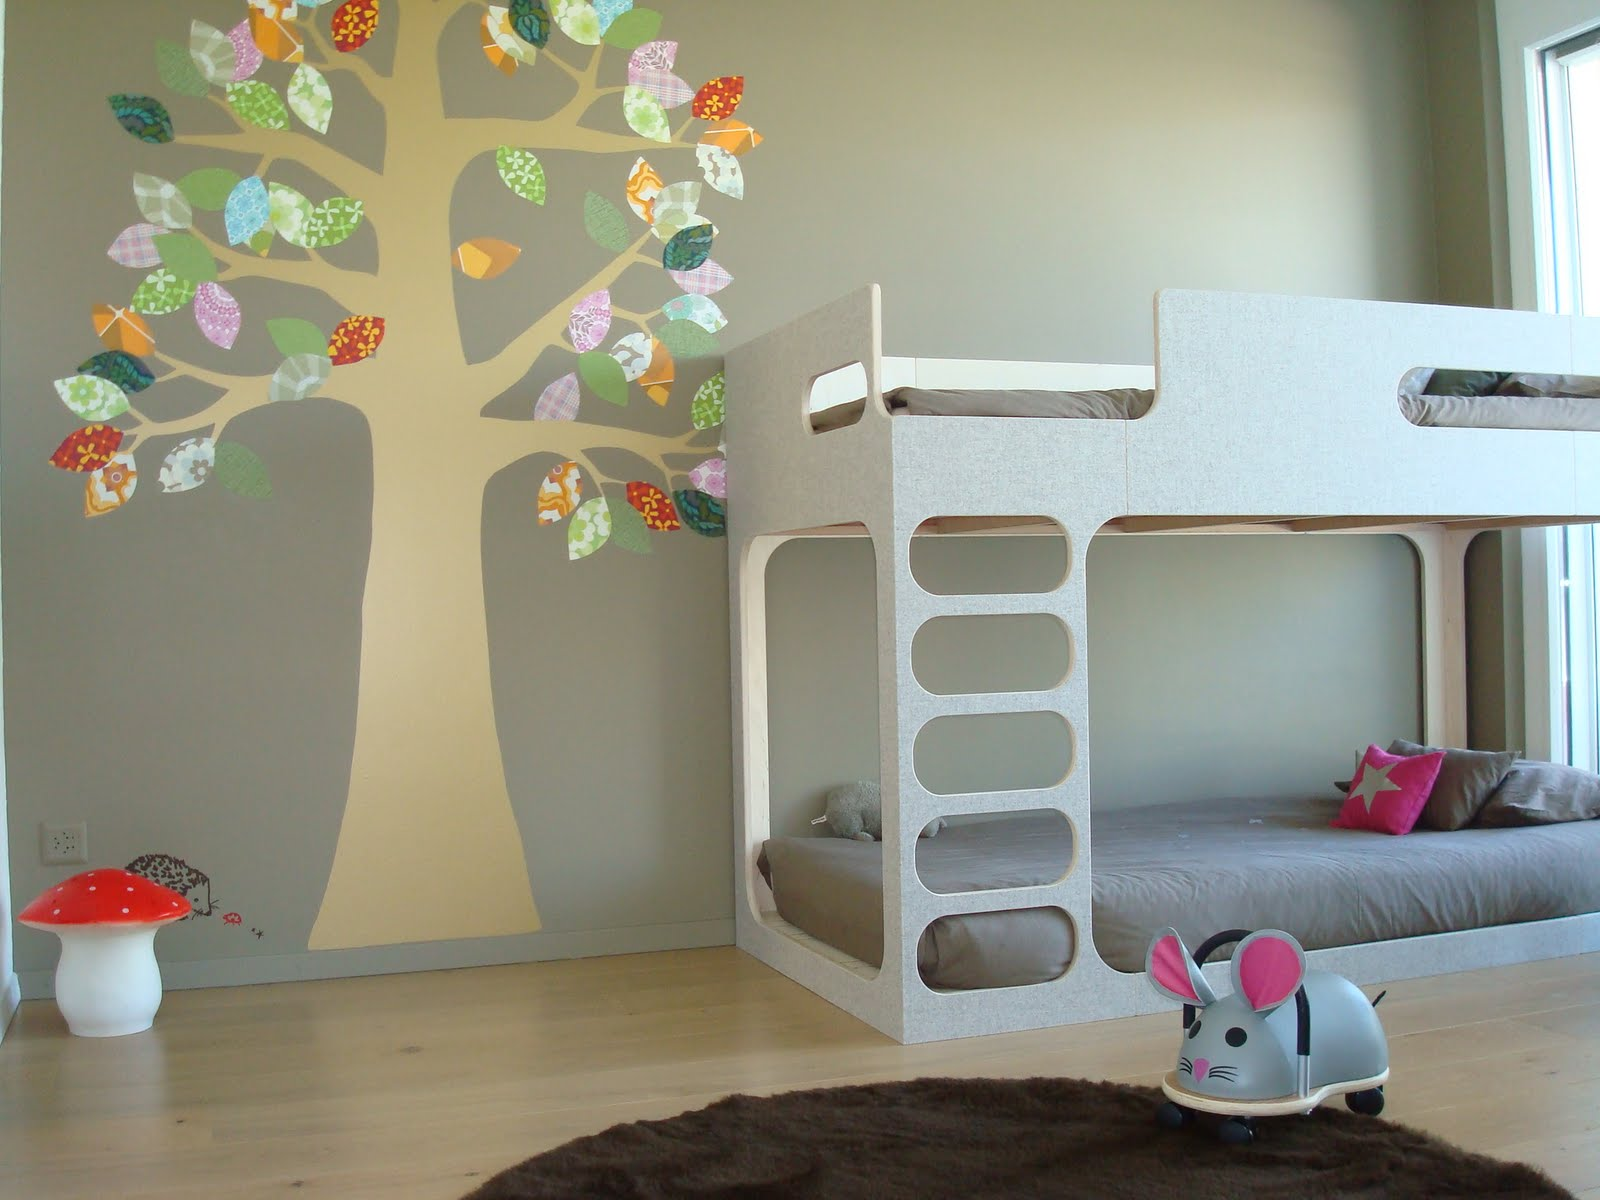 Childrens bedroom wallpaper ideas home decor uk for Wallpaper room ideas